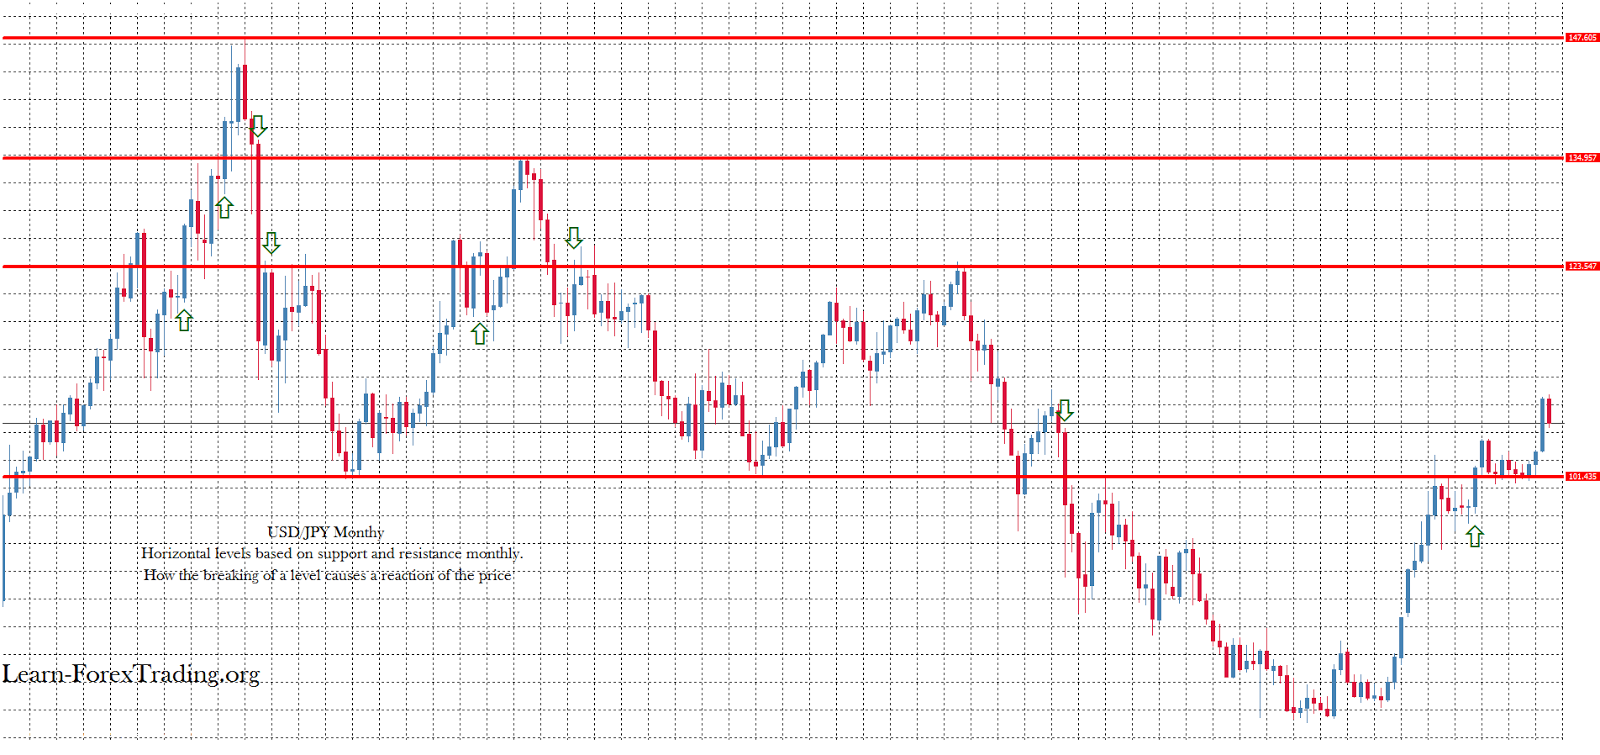 Support and resistance as horizontal lines